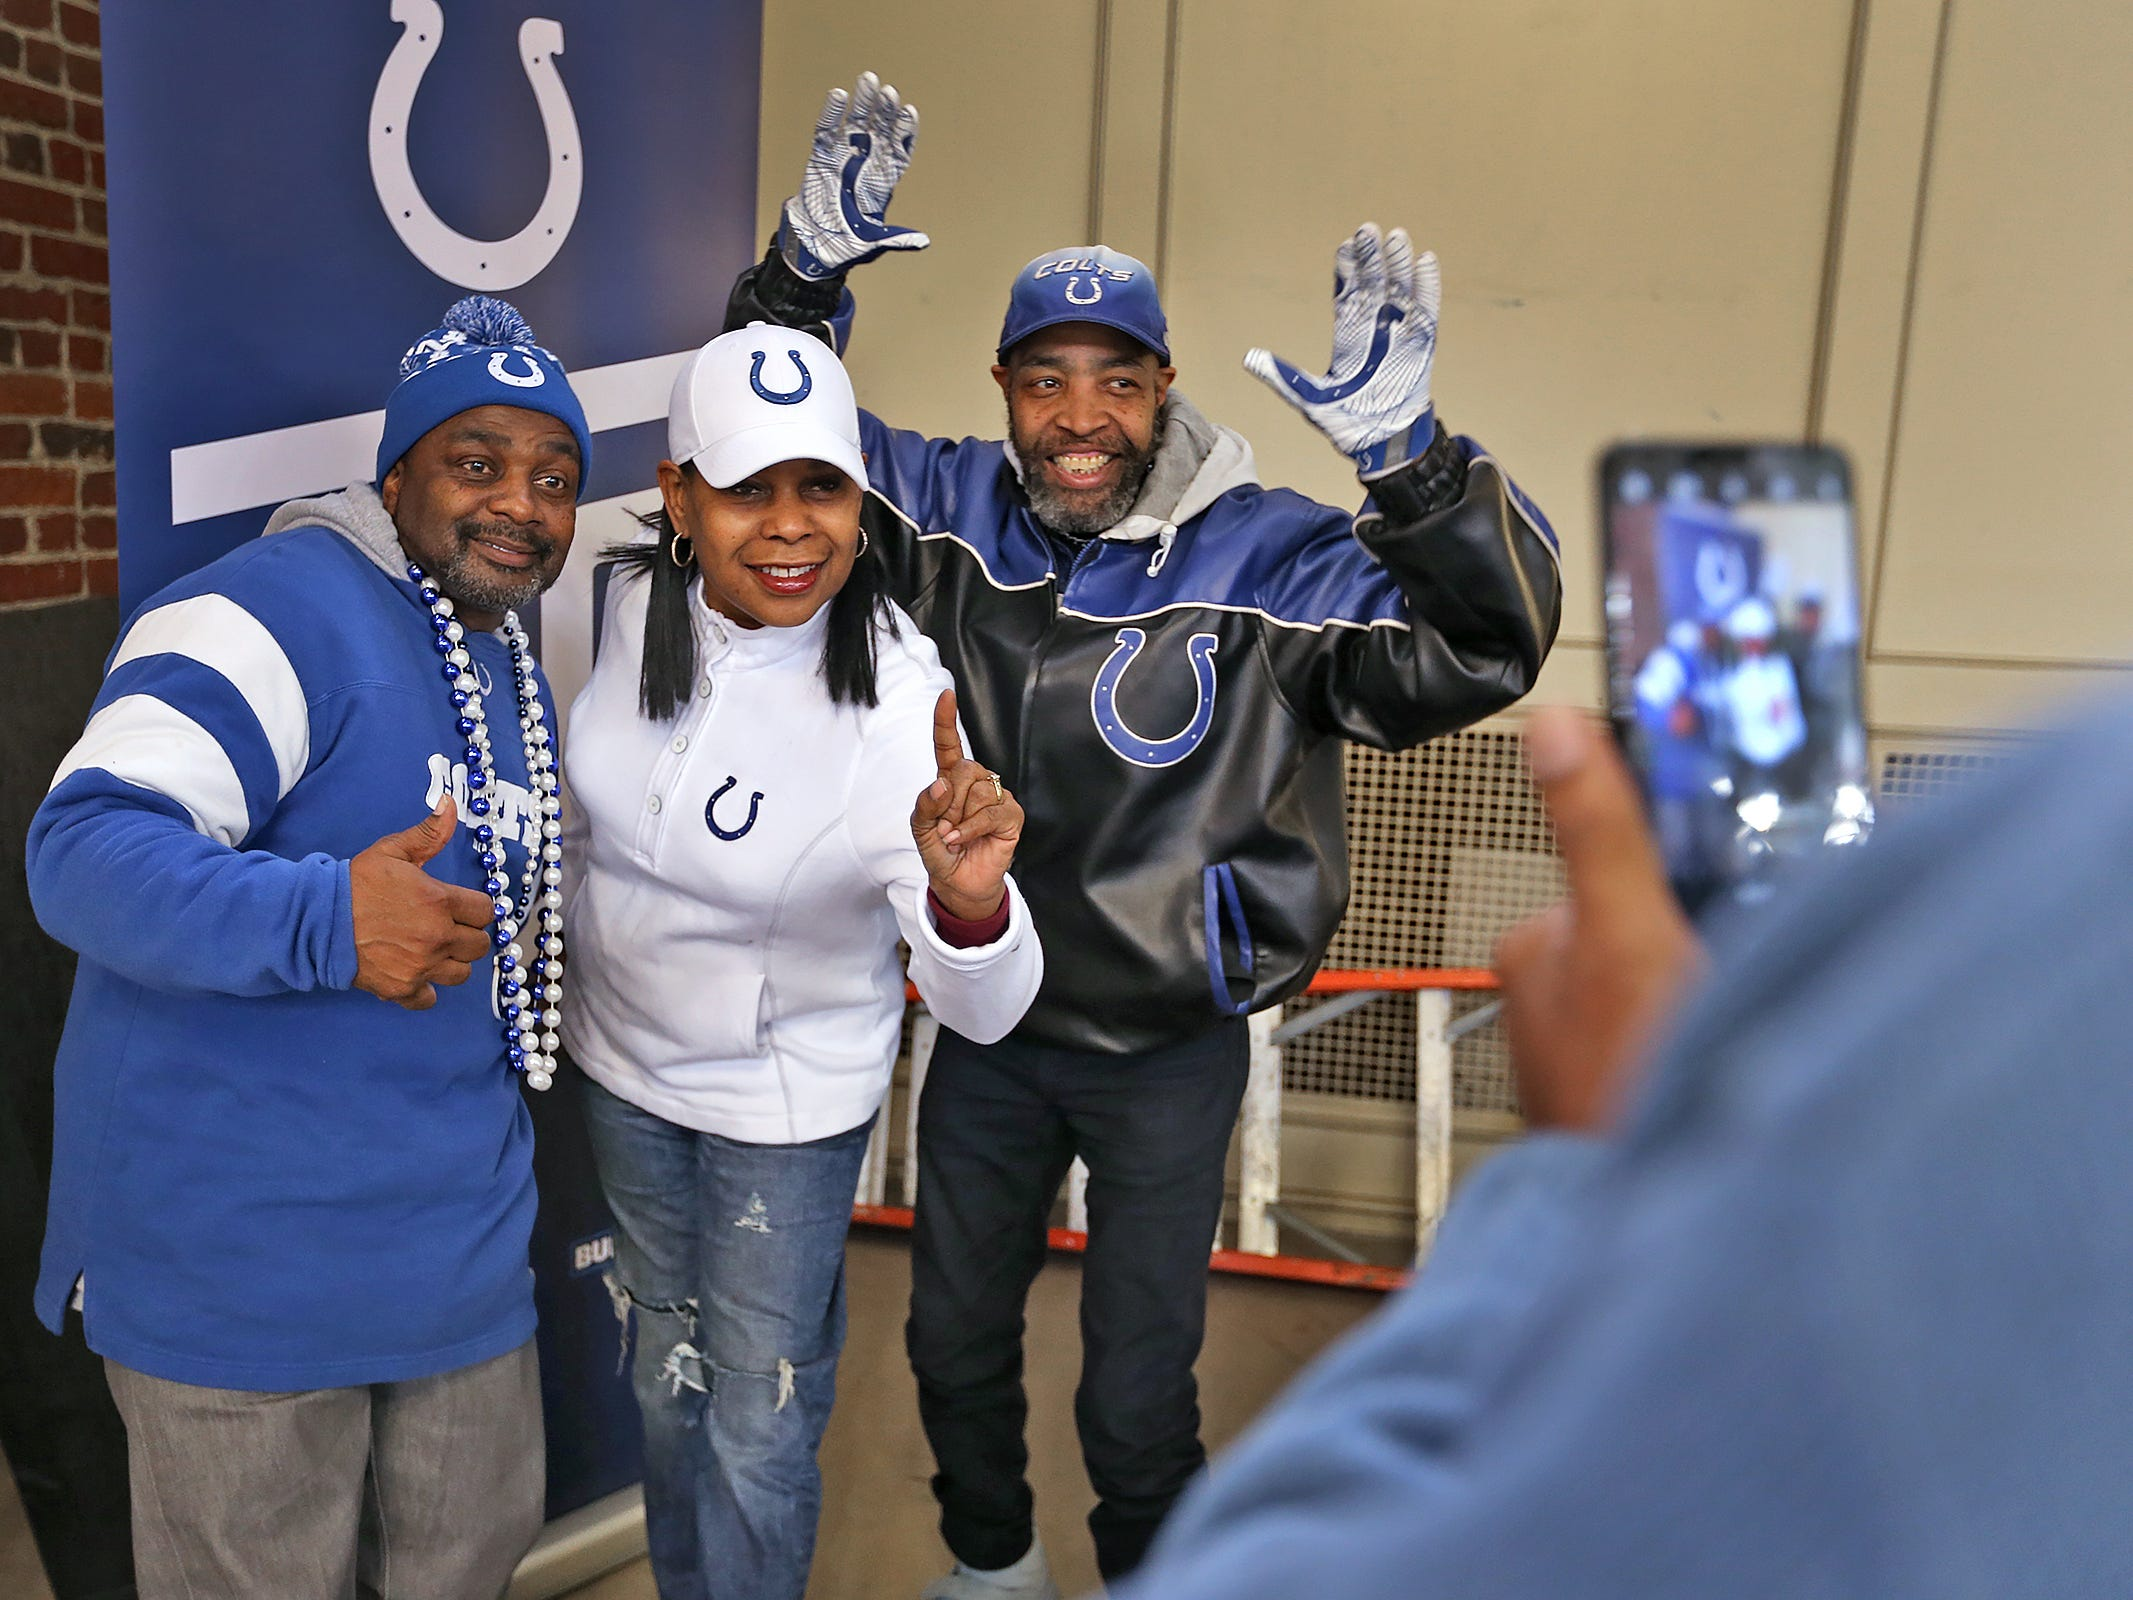 """Colts #1 Fan"" Cheryl McClendon, center, and her ""sidekicks"" George Logan, left, and David Woods pose for photos at the City Market, Thursday, Jan. 10, 2019.  Fans could sign a 1-0 banner in support of the team.  The banner will be displayed for the team to see at the airport as they head off to their Kansas City playoff game."